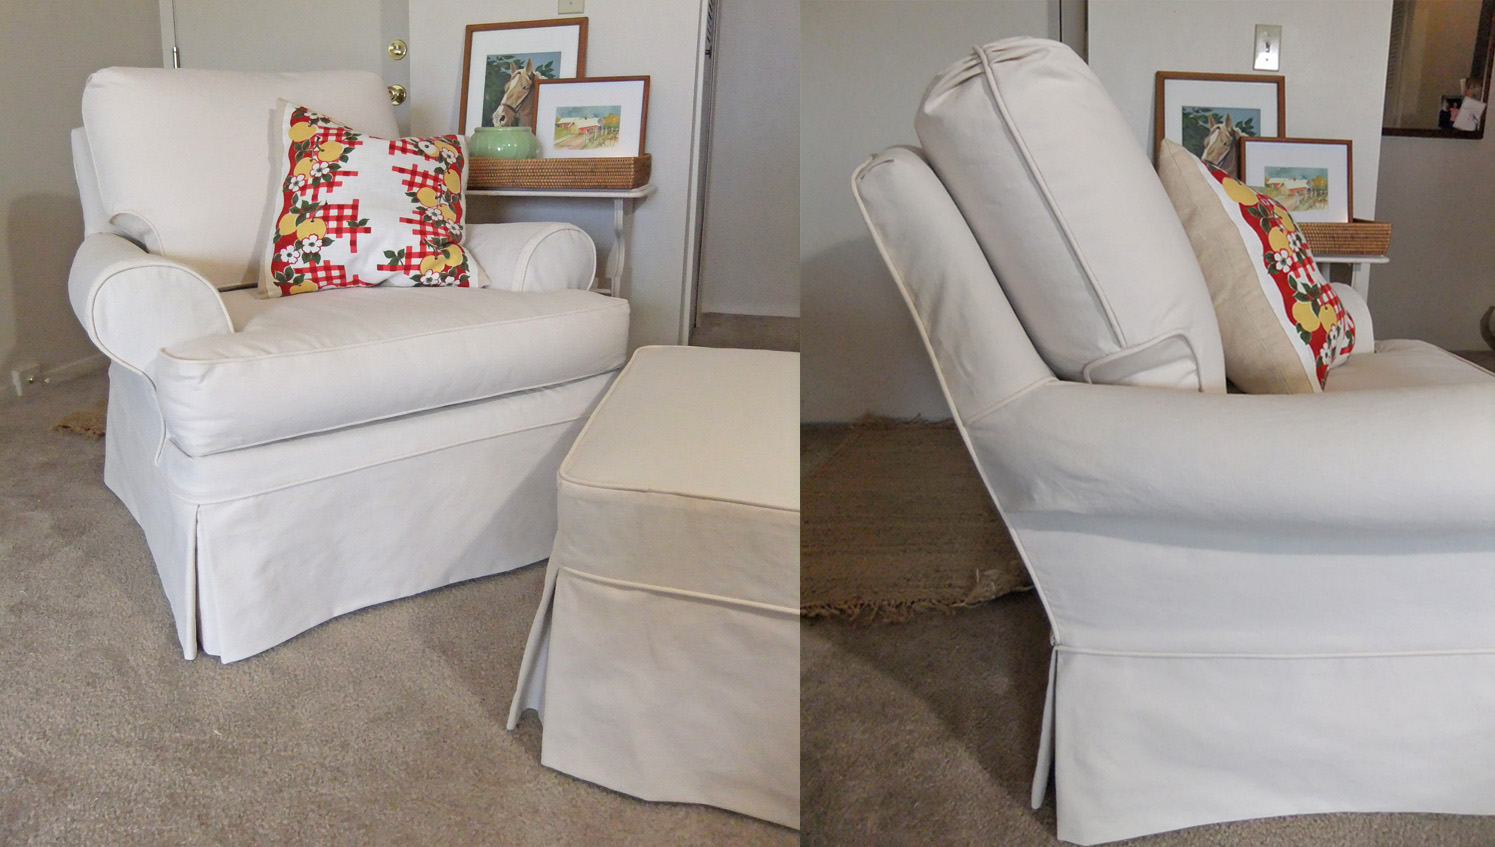 Delicieux Cotton Canvas Slipcovers By Karen Powell